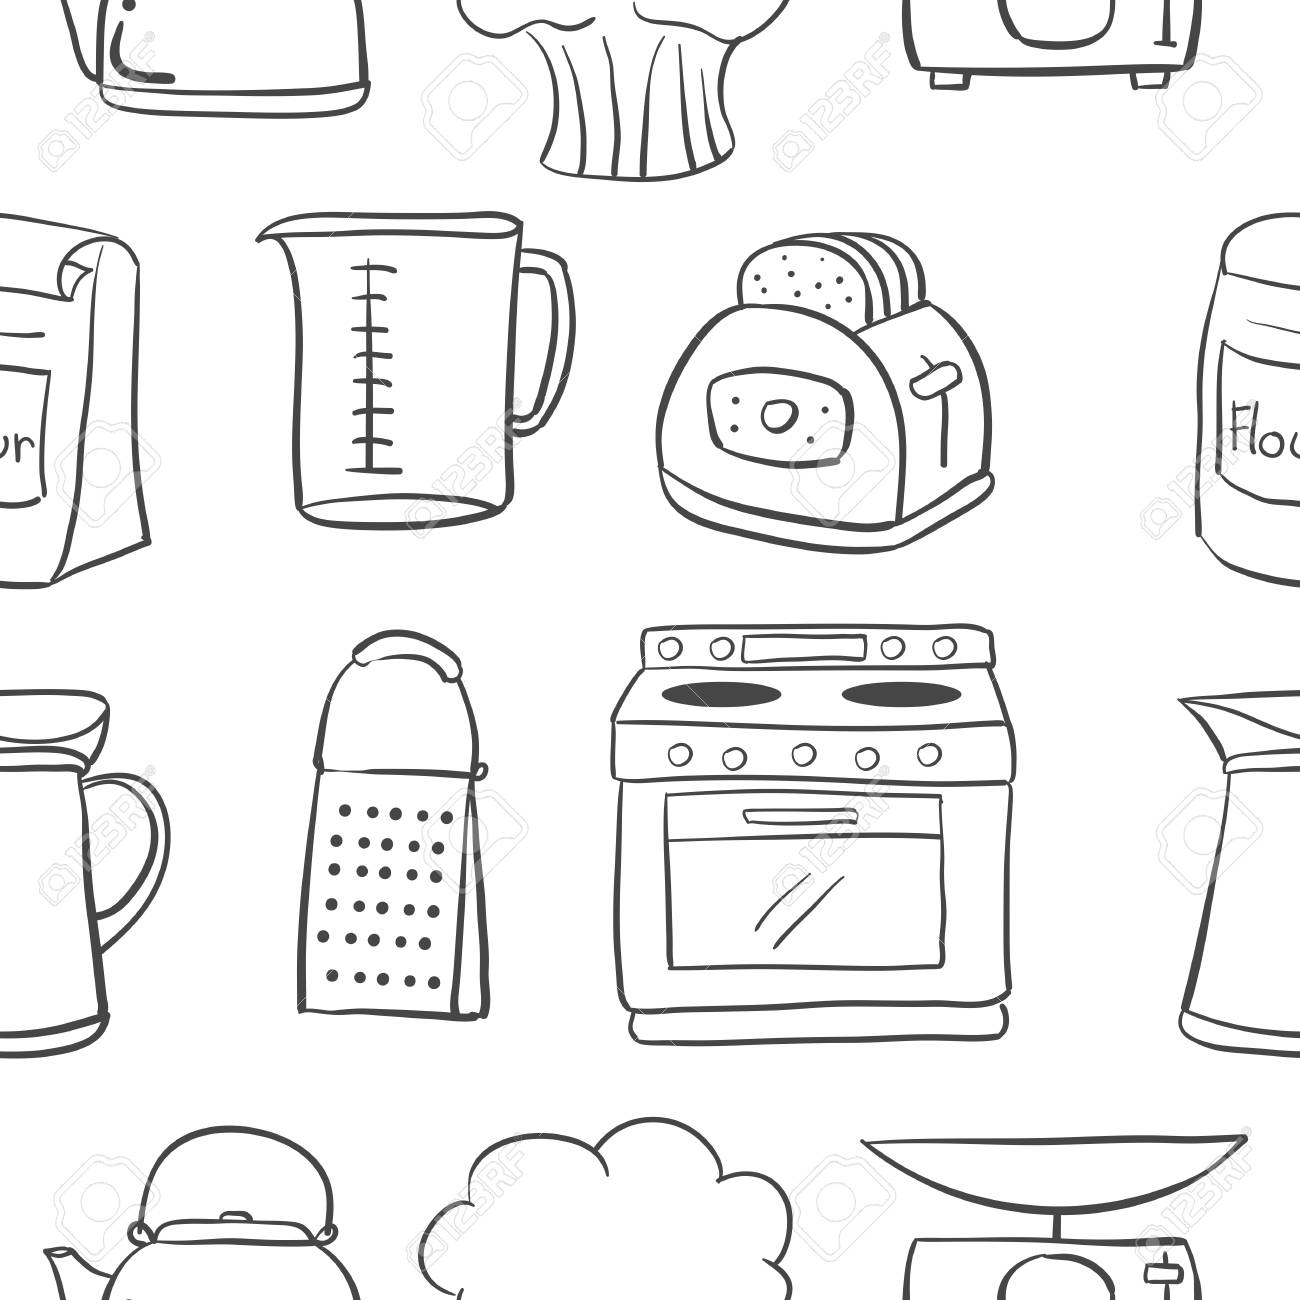 Hand Draw Kitchen Object Doodle Style Royalty Free Cliparts Vectors